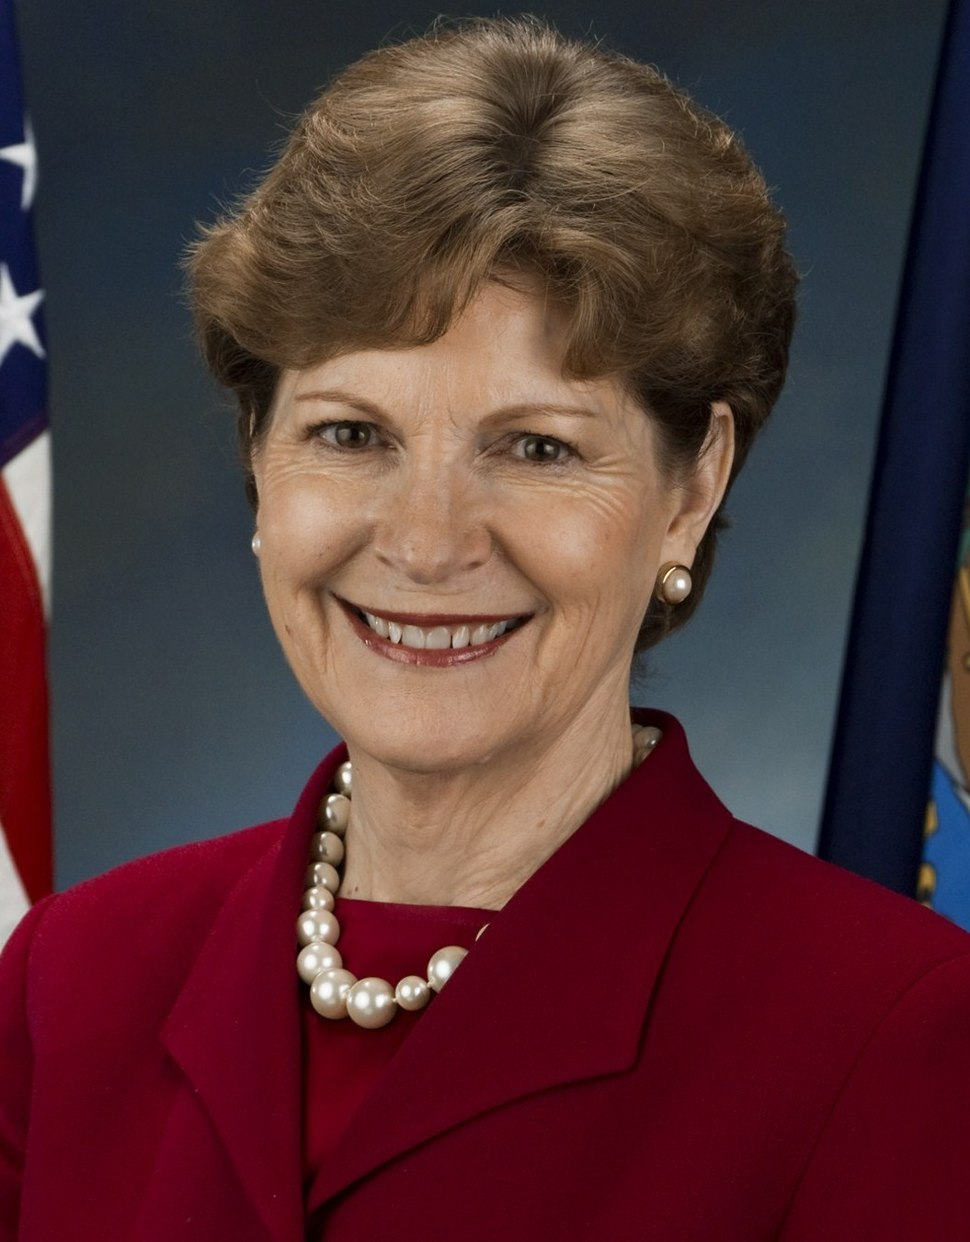 Jeanne Shaheen, official Senate portrait cropped